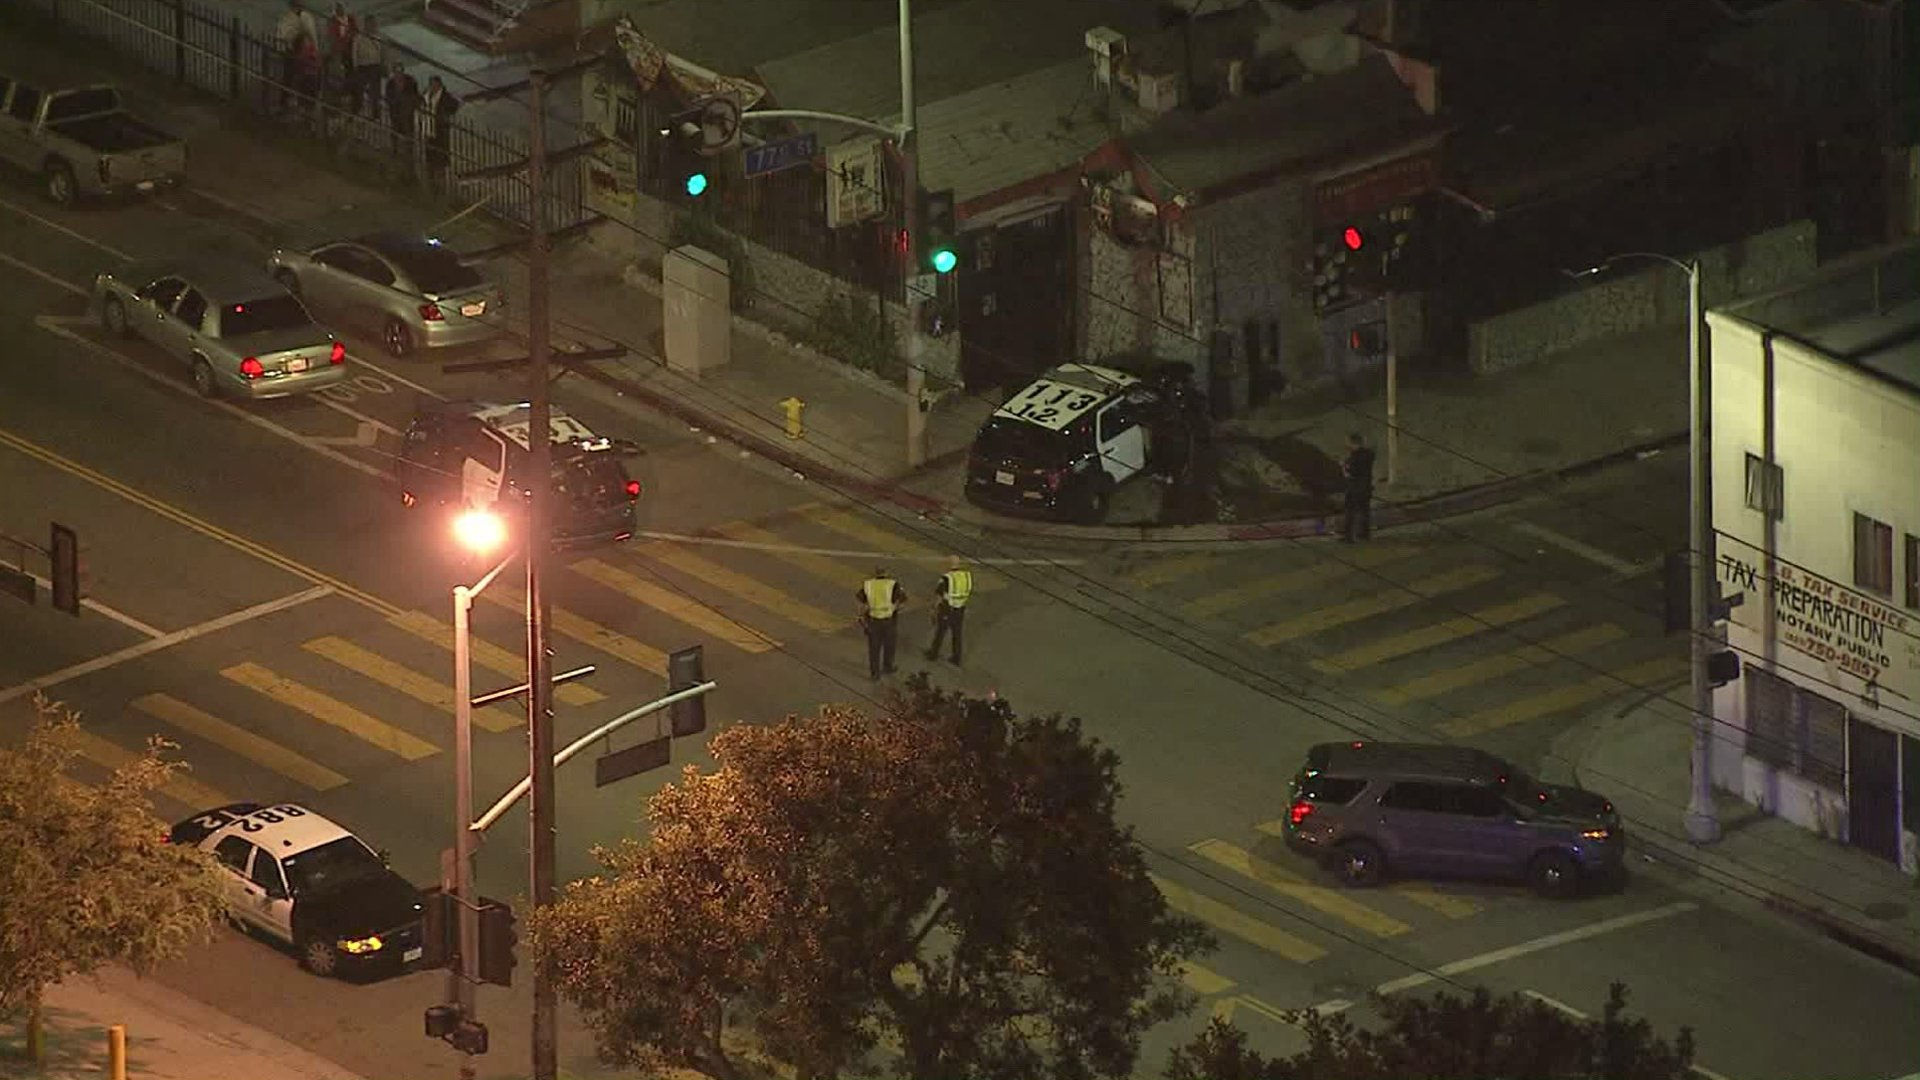 lapd-cruisers-crash2-ktla